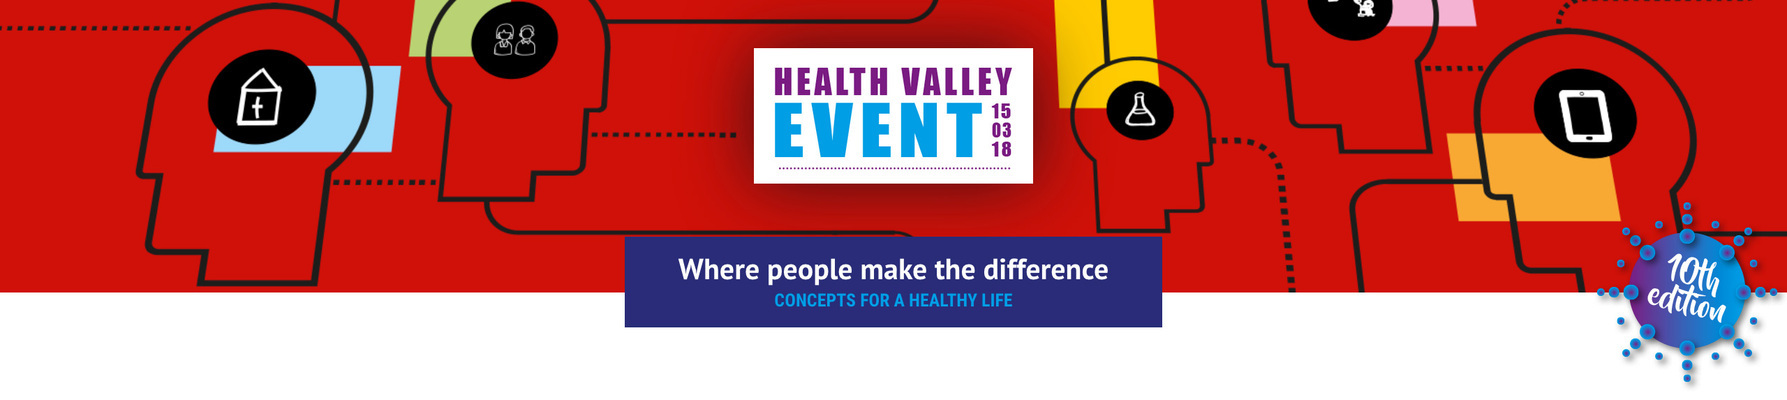 Health Valley Event 2018 - sponsoren